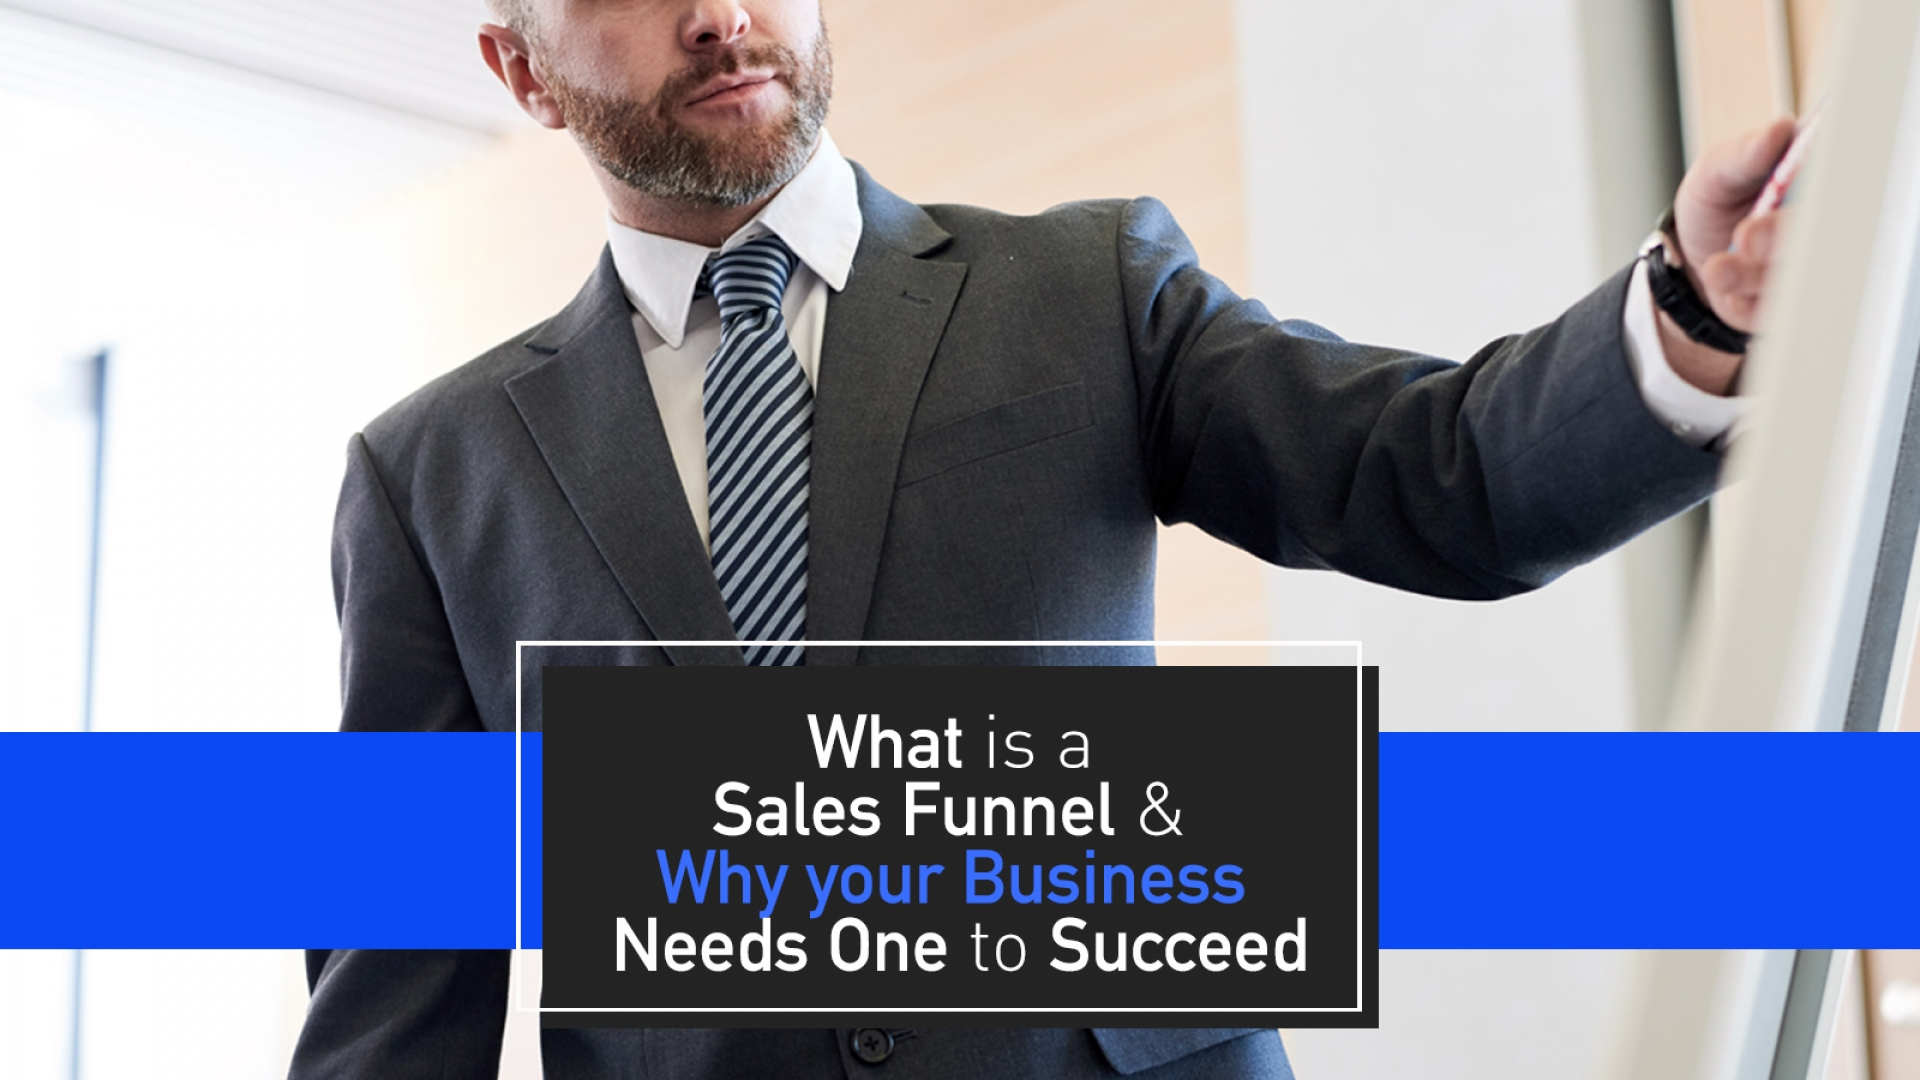 What is a Sales Funnel & Why Your Business Needs one to Succeed in 2020 - New Age Explorer